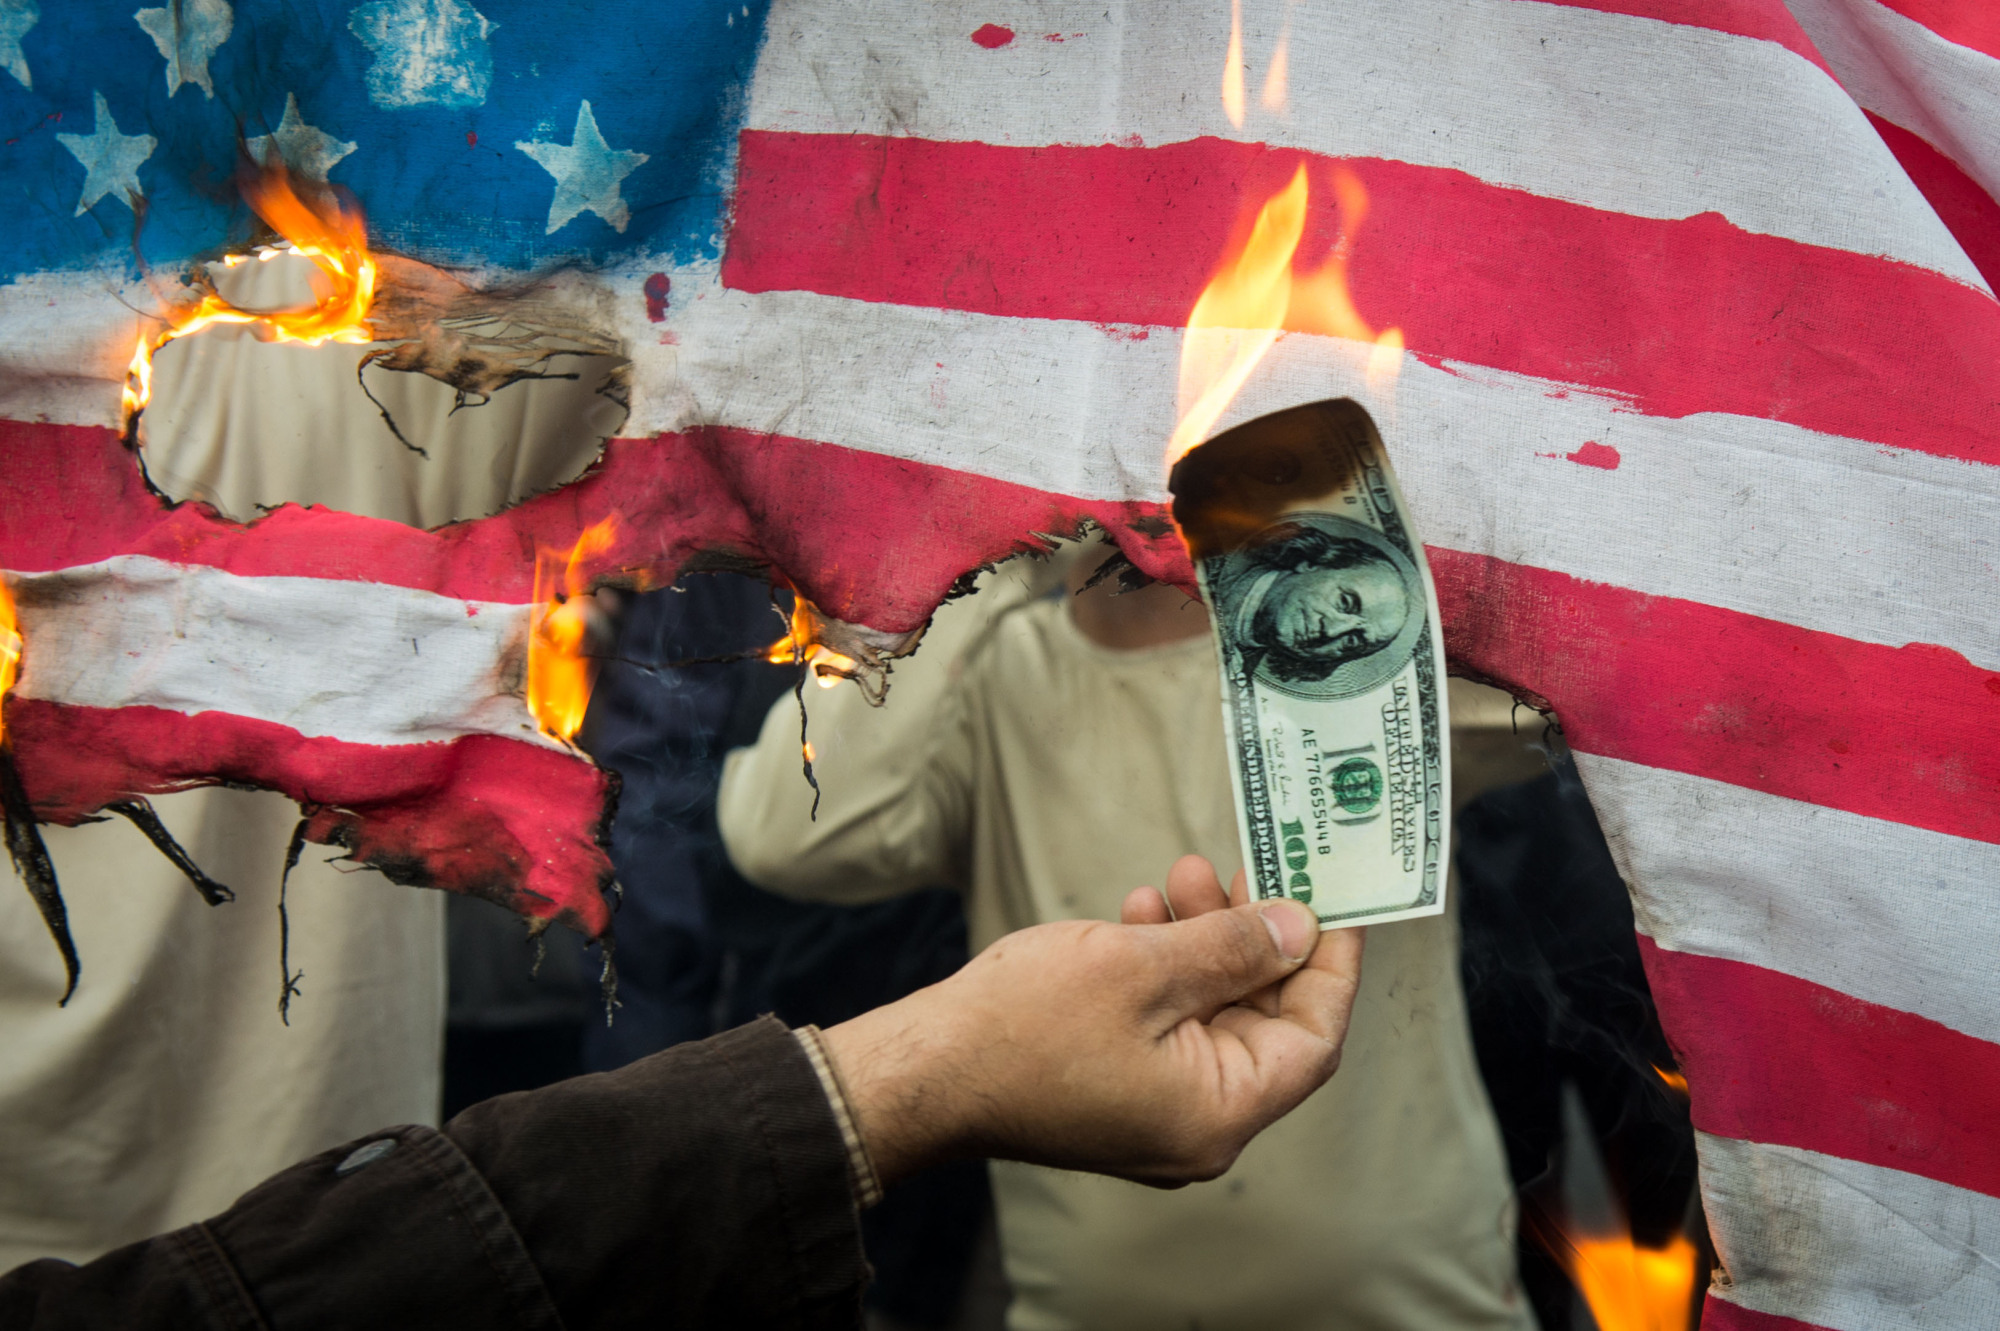 Protesters burn an American flag and money during a demonstration on the anniversary of the U.S. embassy seizure in Tehran on Sunday, the same day that the latest round of U.S. economic sanctions on Iran went into effect. | BLOOMBERG